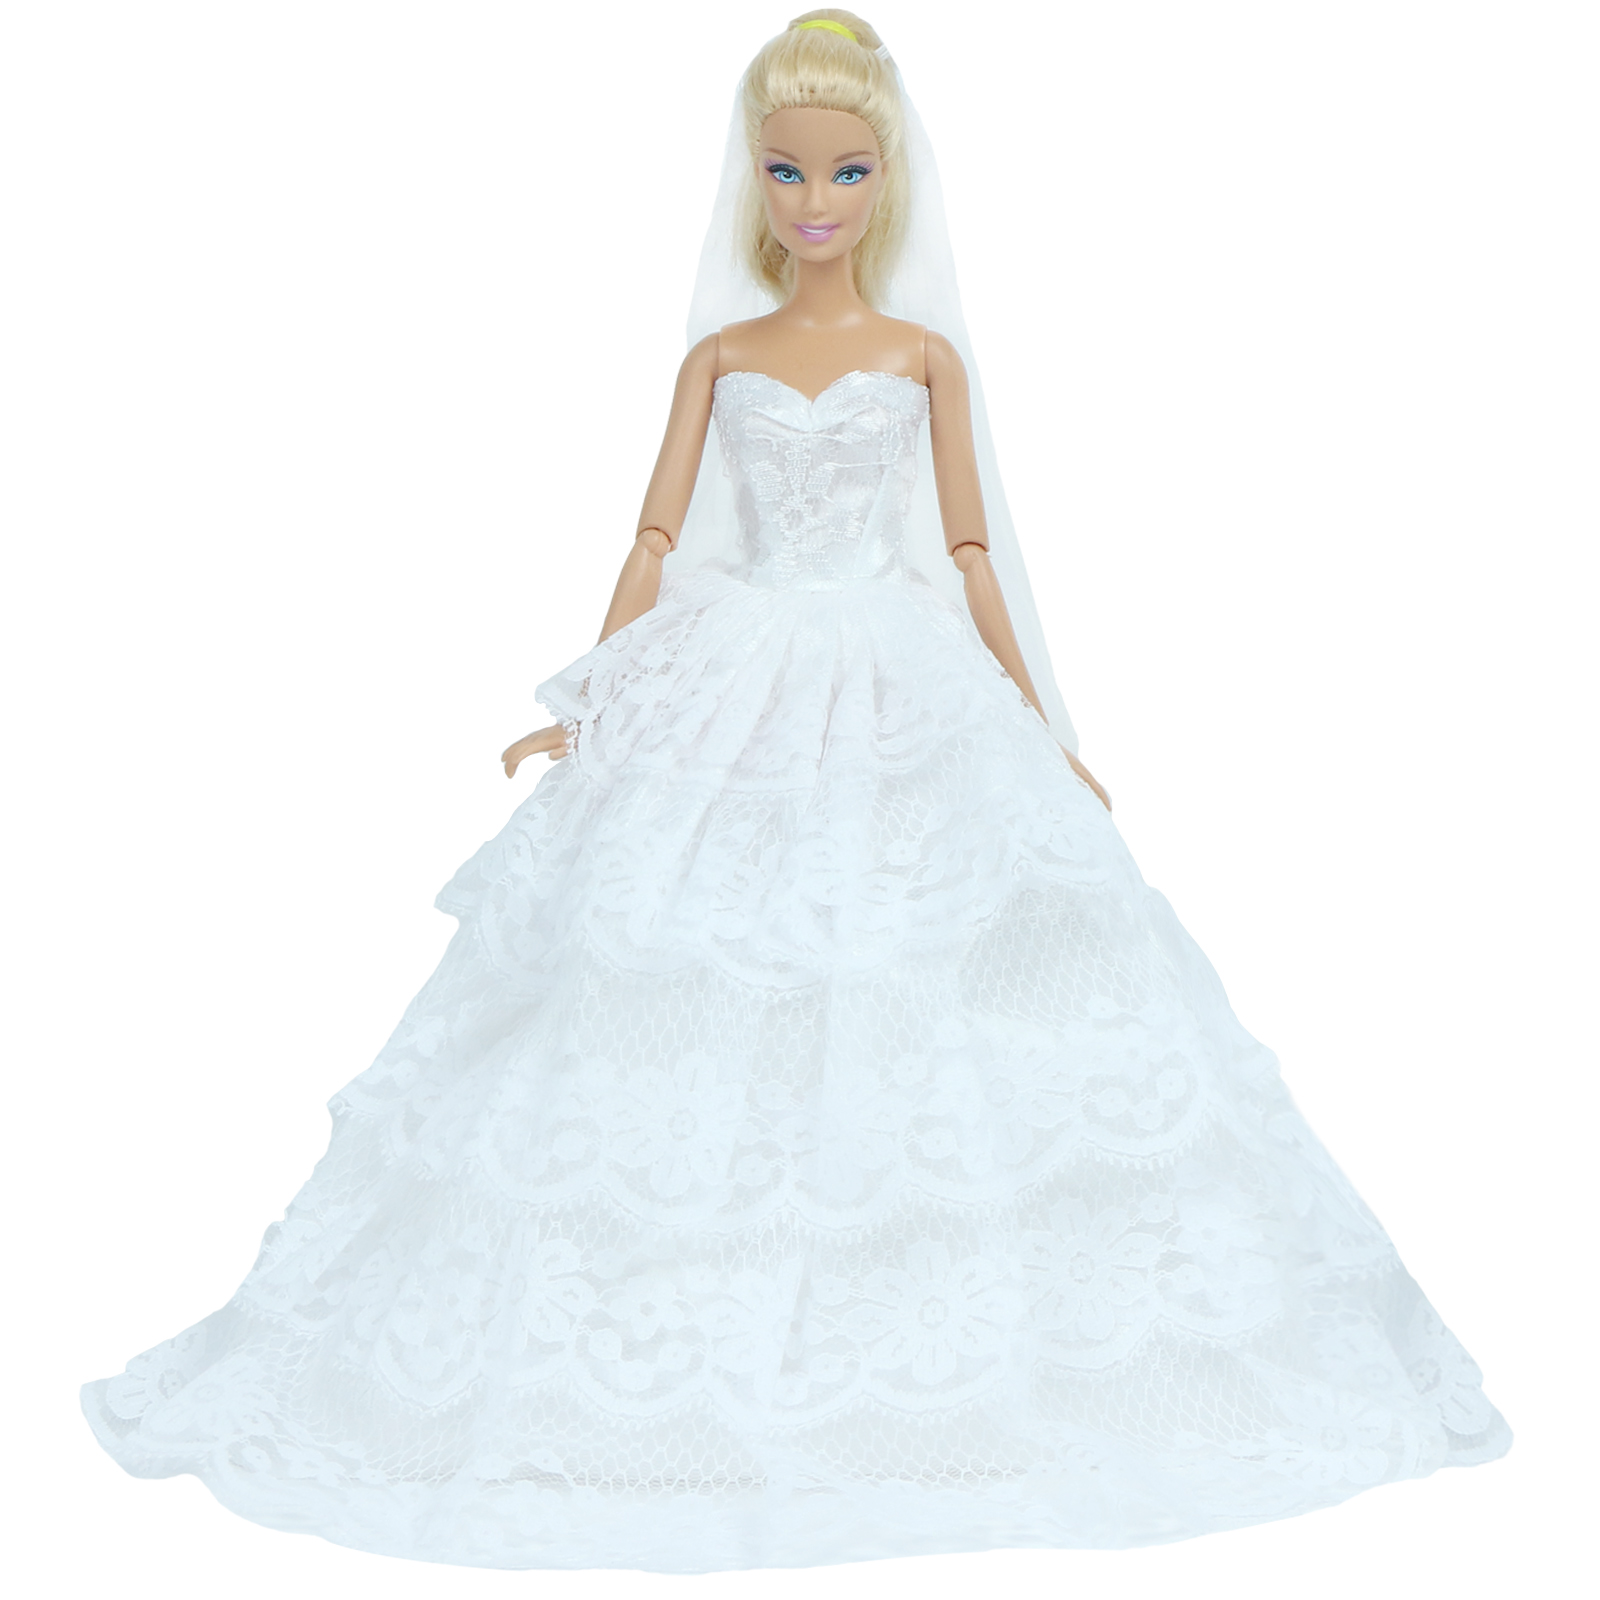 """White Wedding Gown Party Handmade Costumes for Barbie Doll Clothing 12/"""" Dresses"""